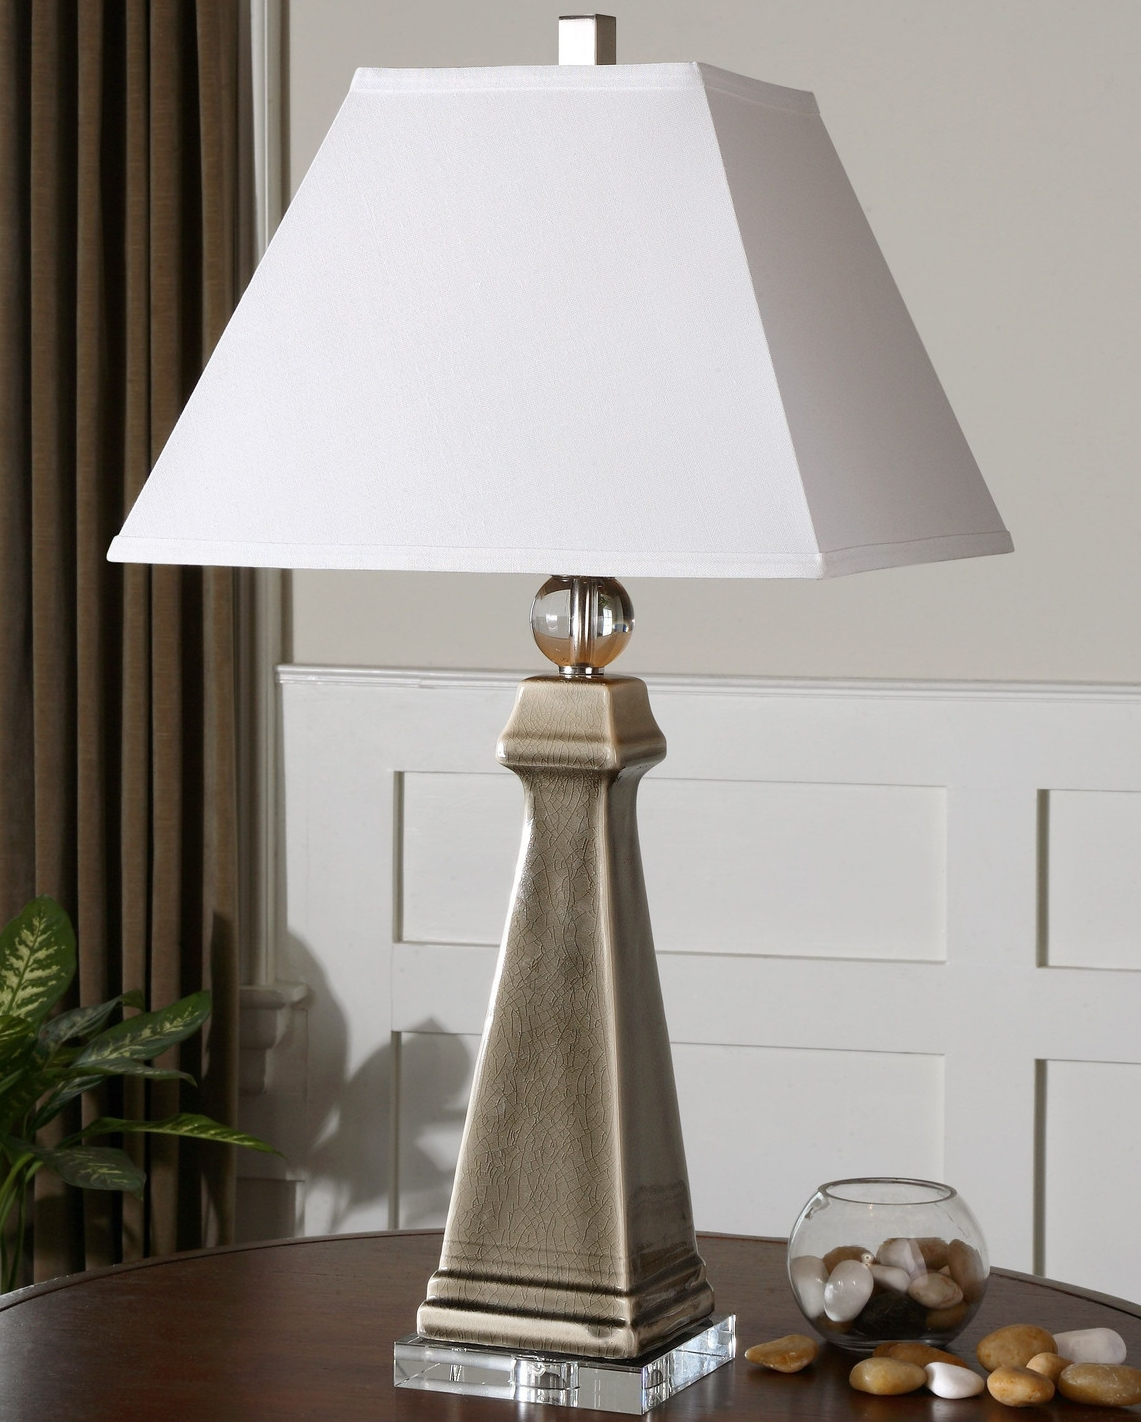 Colobraro+30.5%22+H+Table+Lamp+with+Square+Shade.jpg